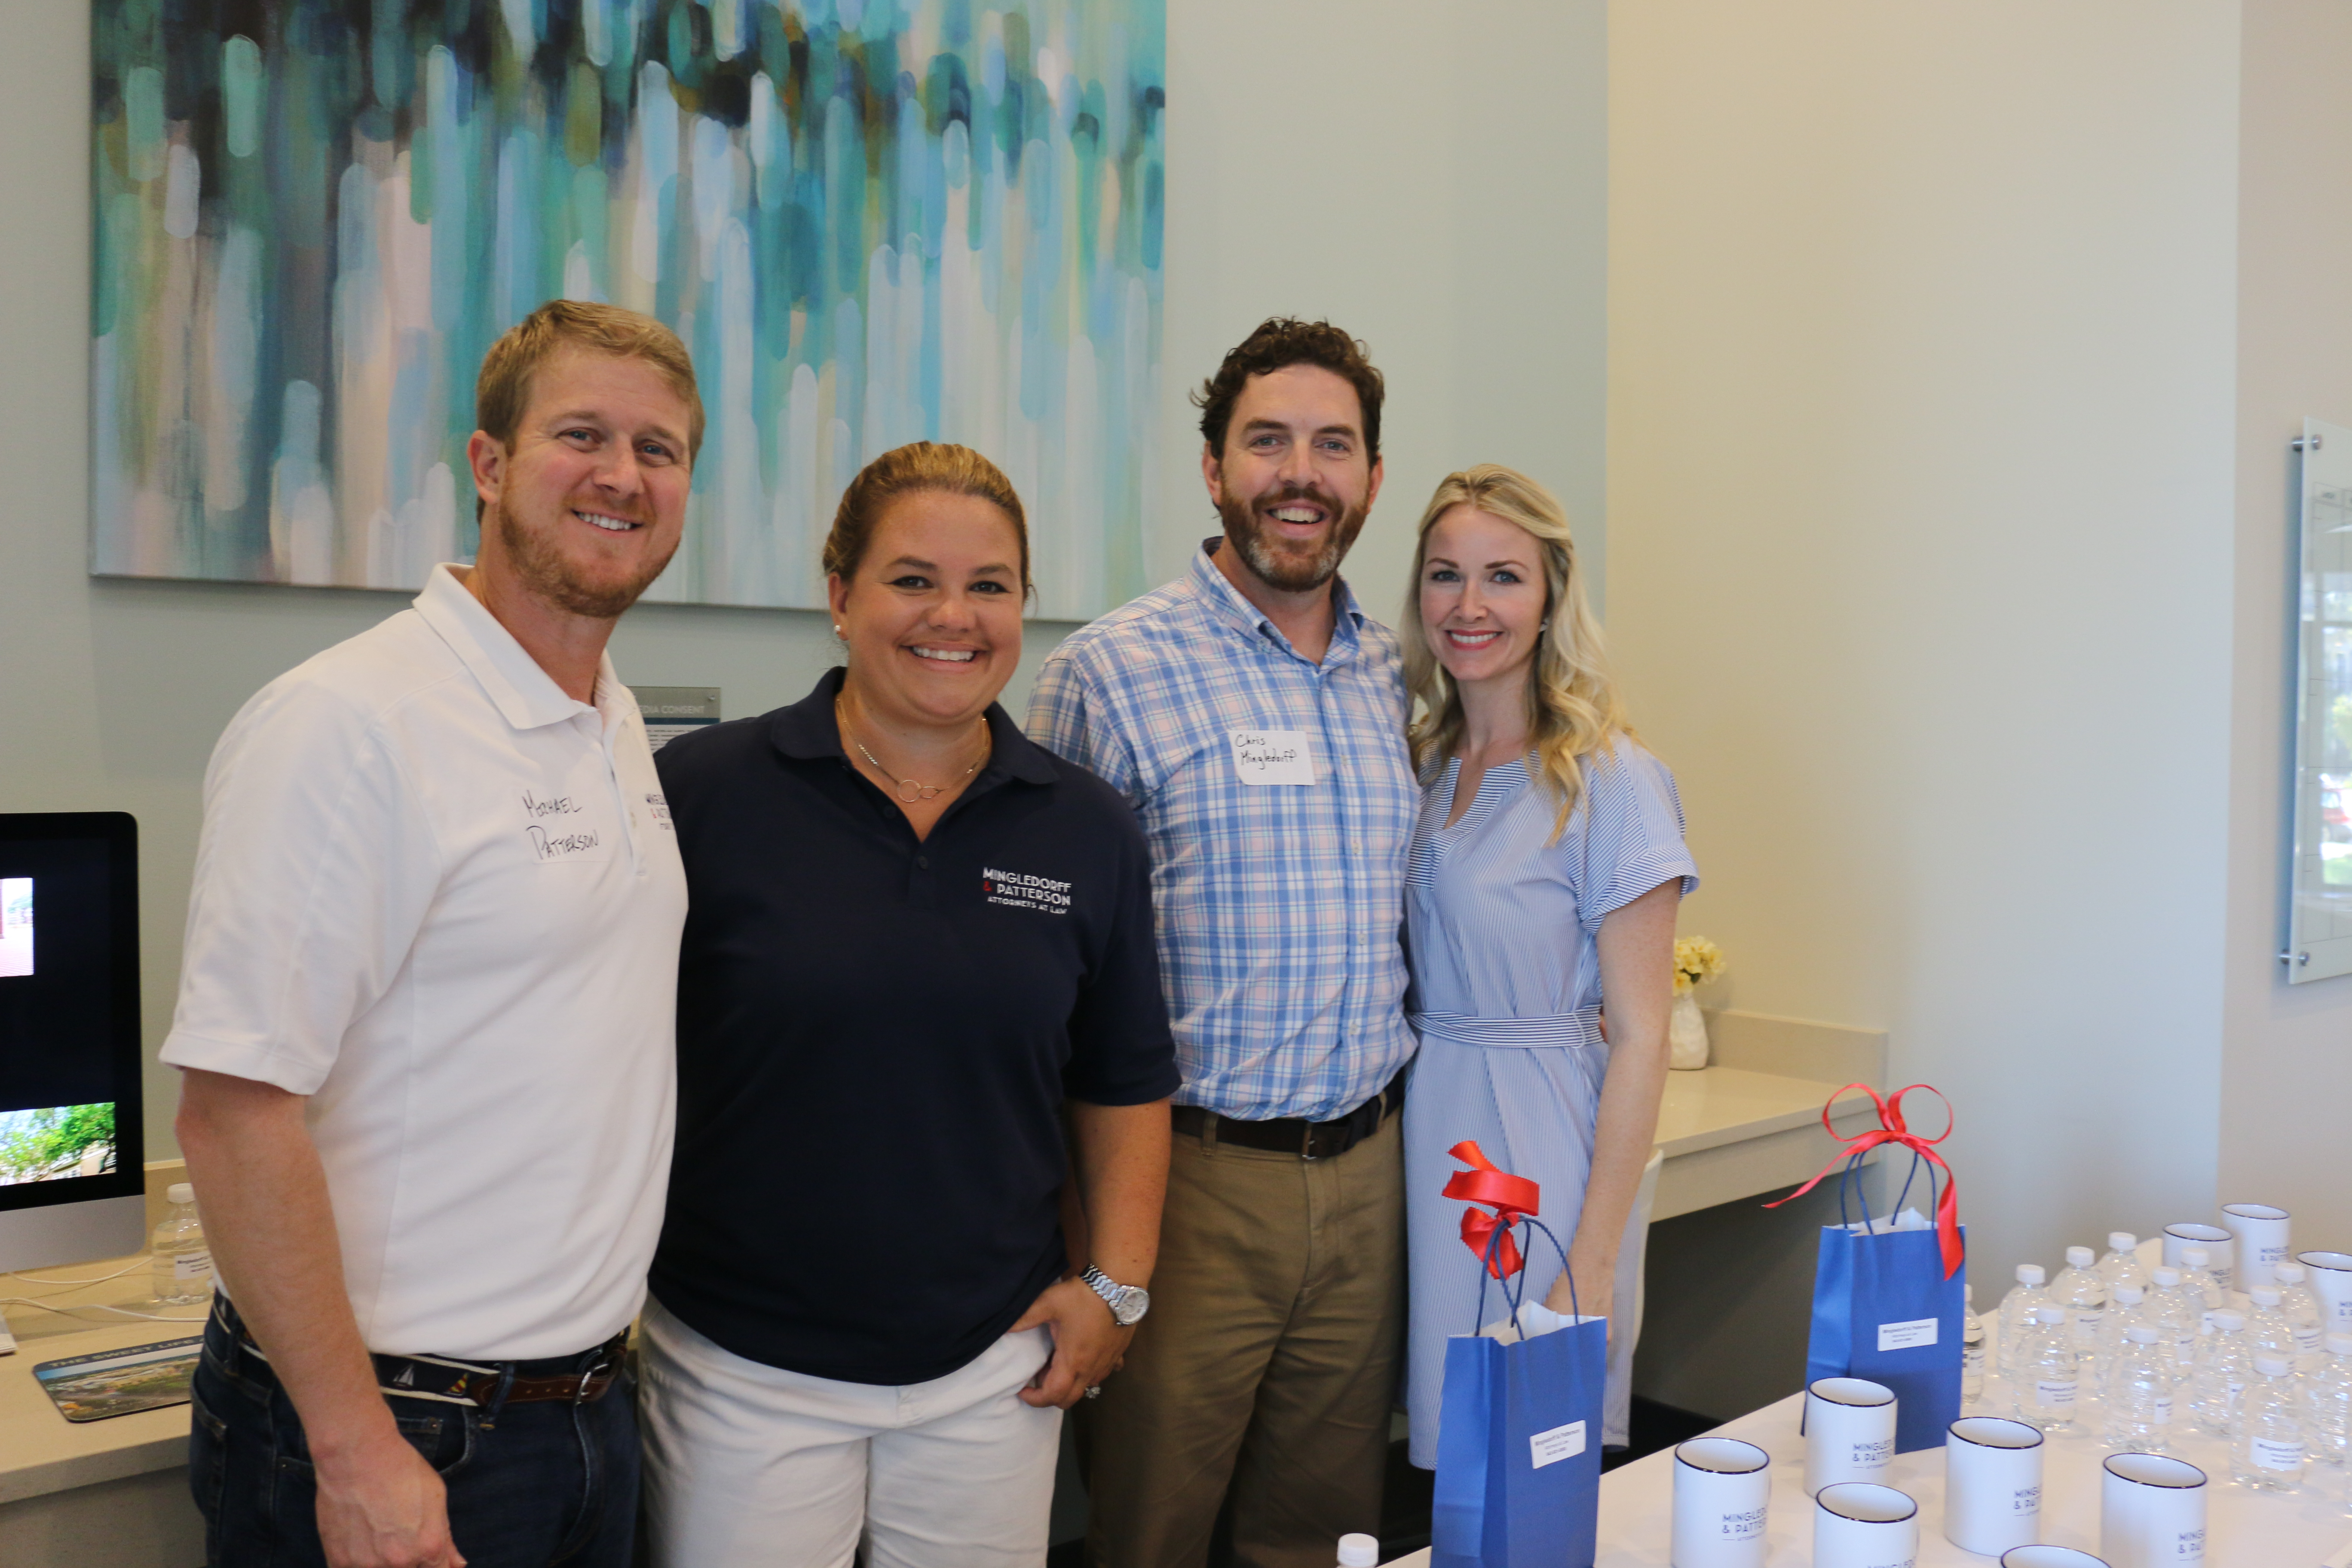 Mingledorff & Patterson, Attorneys at Law, were the featured sponsor at the Block Party. Pictured left to right: Michael Patterson, Sarah Patterson, Chris Mingledorff and Emily Mingledorff.